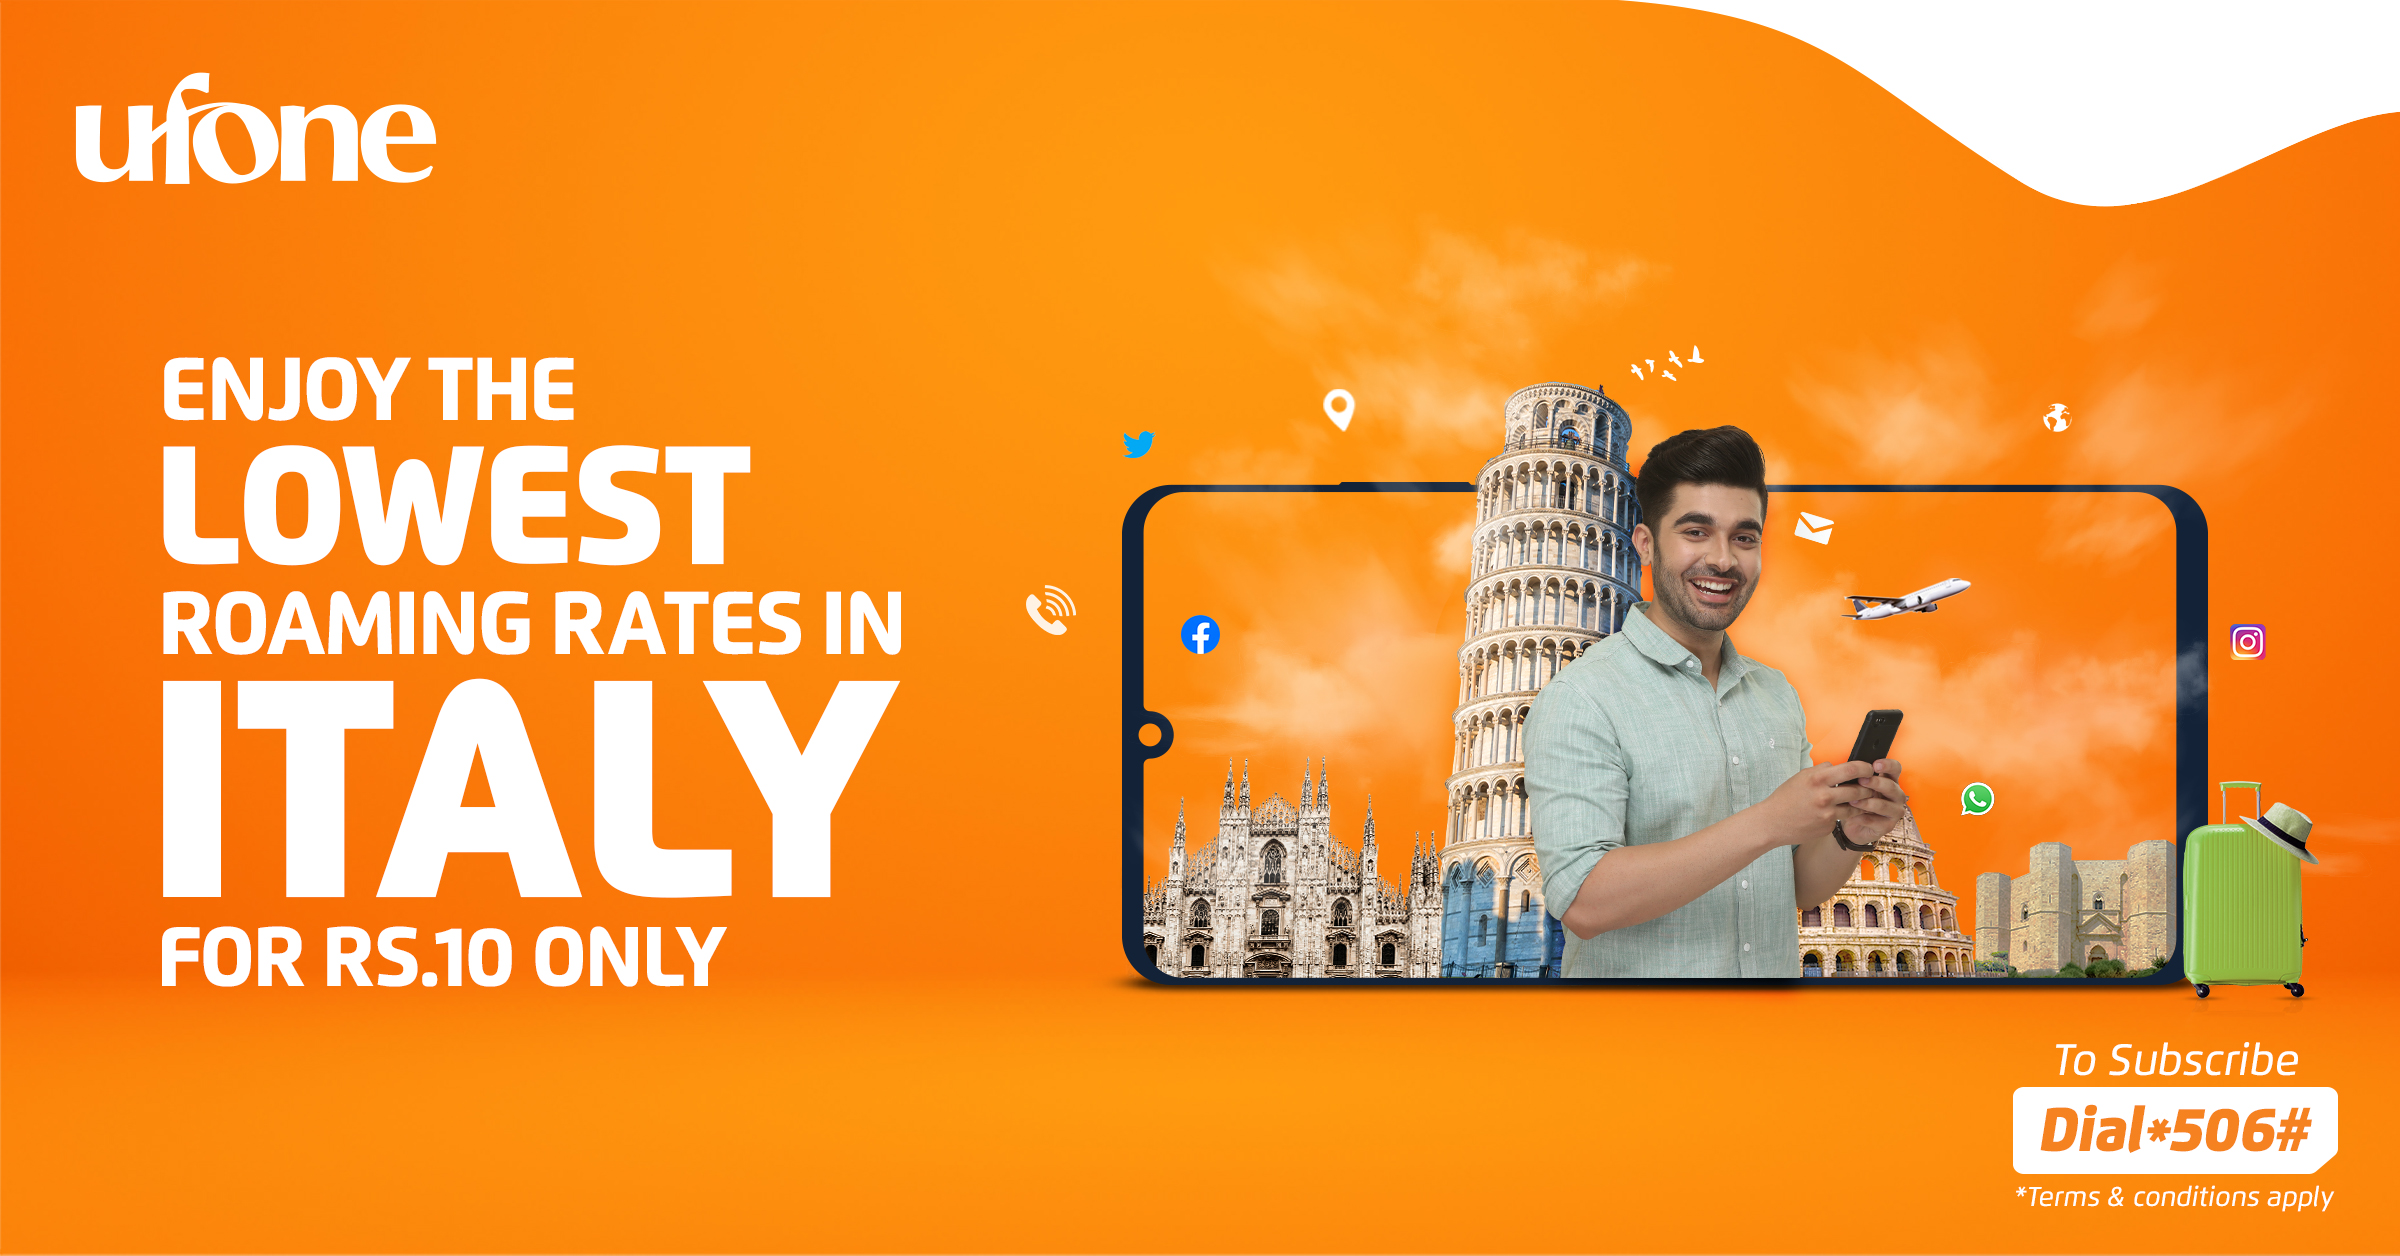 Photo of Ufone offers lowest international roaming rates for Italy